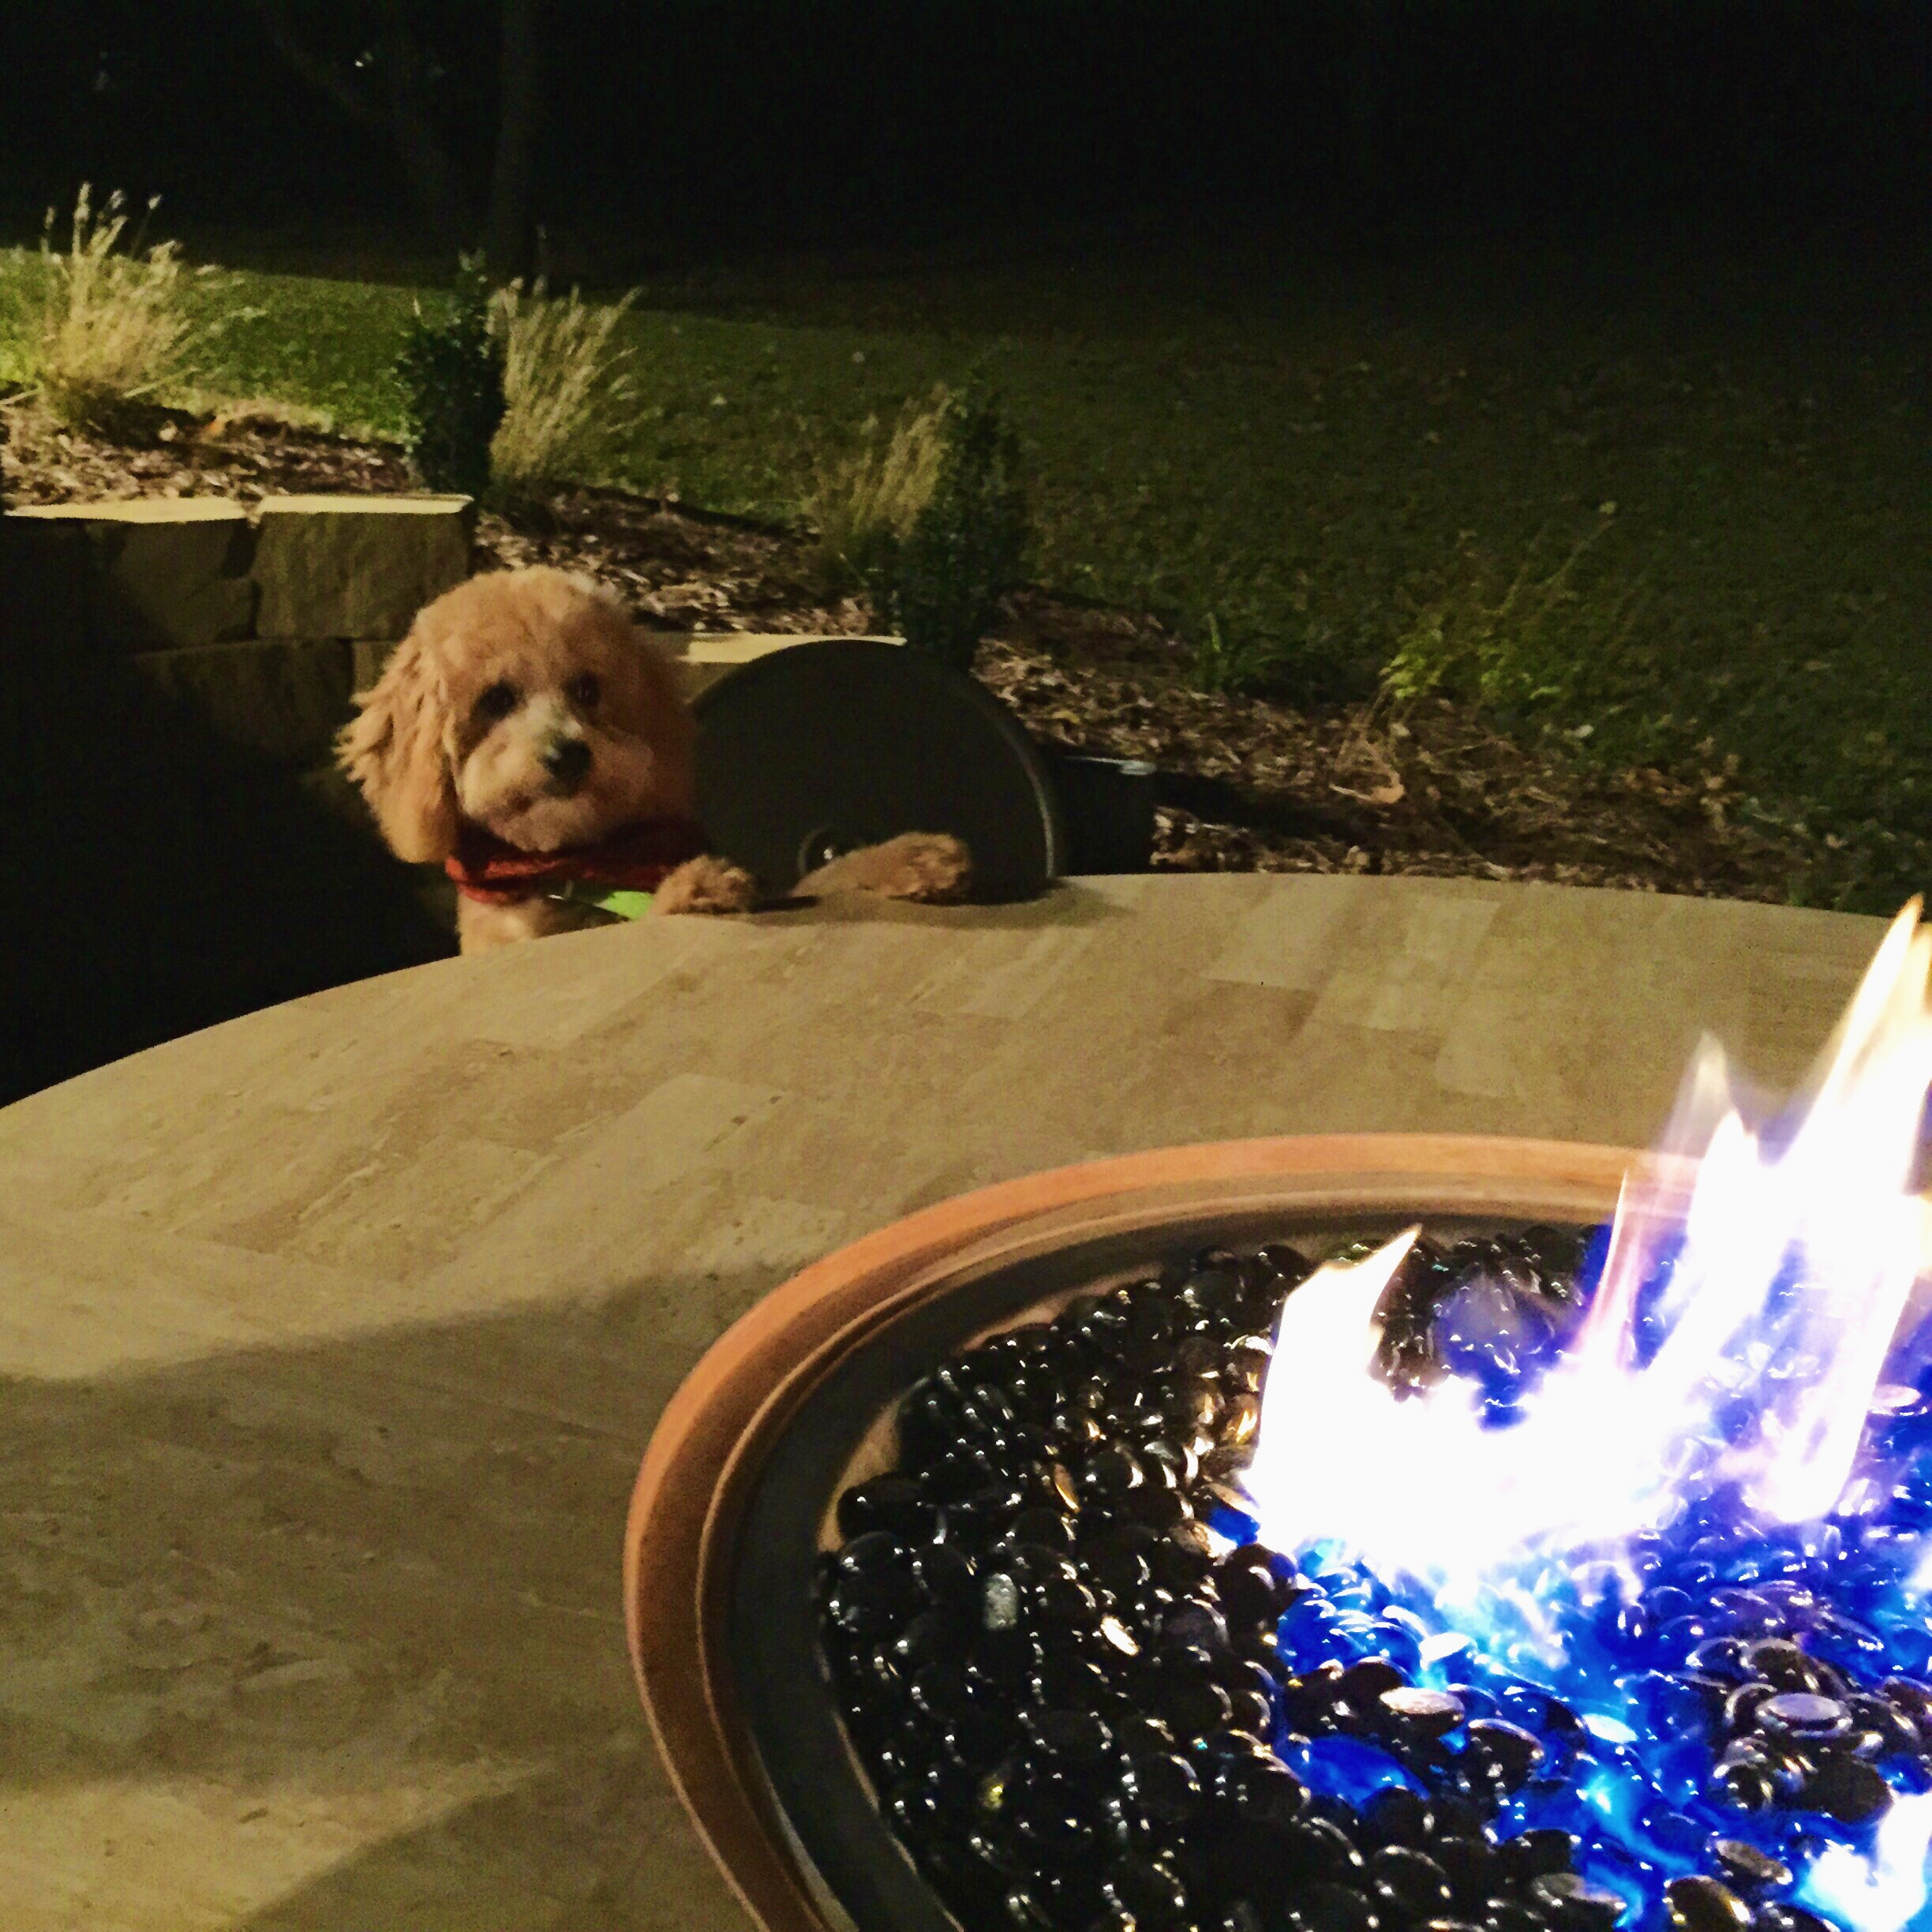 Shiner and the Fire Table